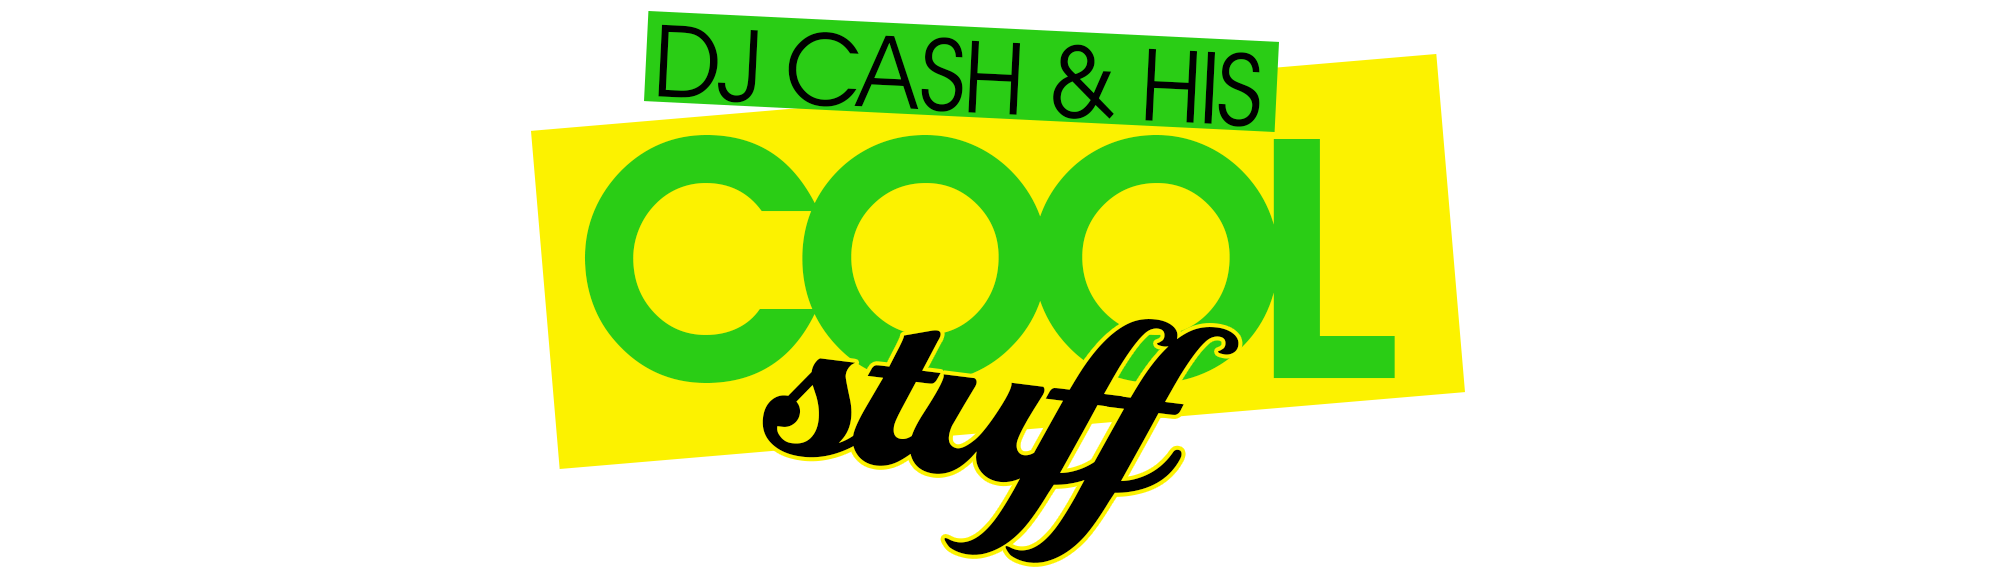 dj-cash-money-and-his-cool-stuff-header1